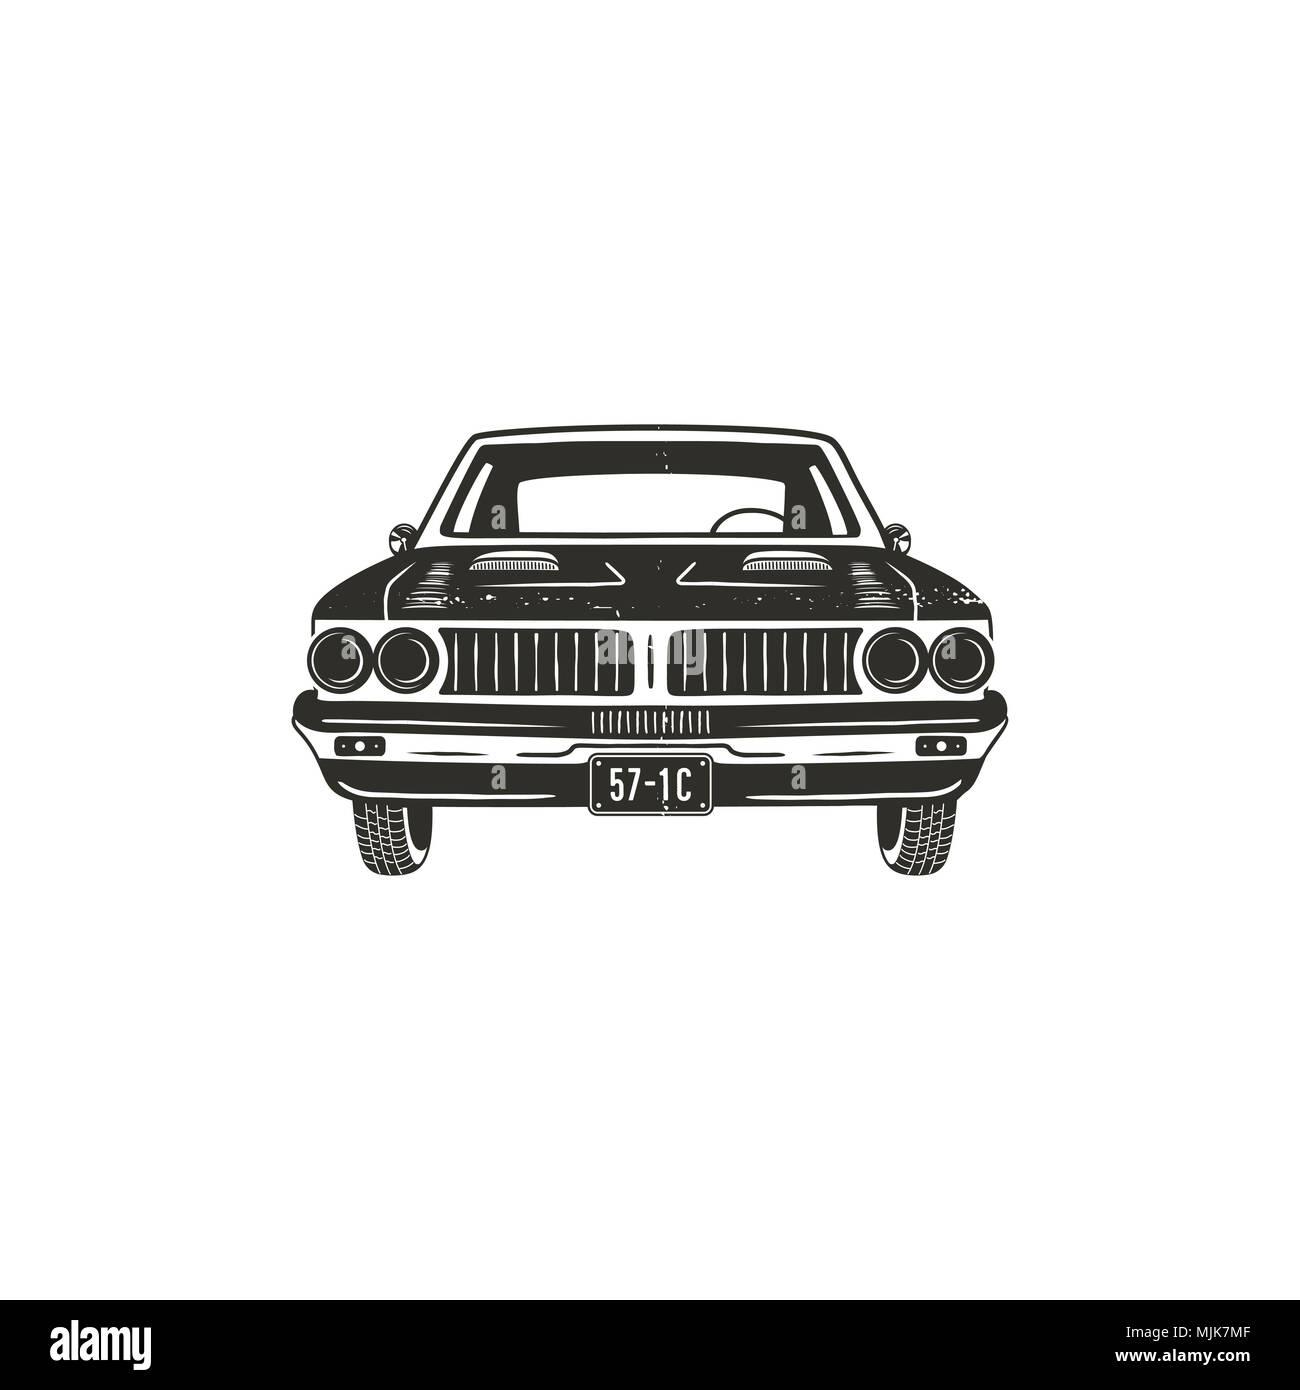 Vintage hand drawn muscle car. Retro car symbol design. Classic car emblem isolated on white background. Stock elements. American auto icon. USA automotive theme - Stock Image